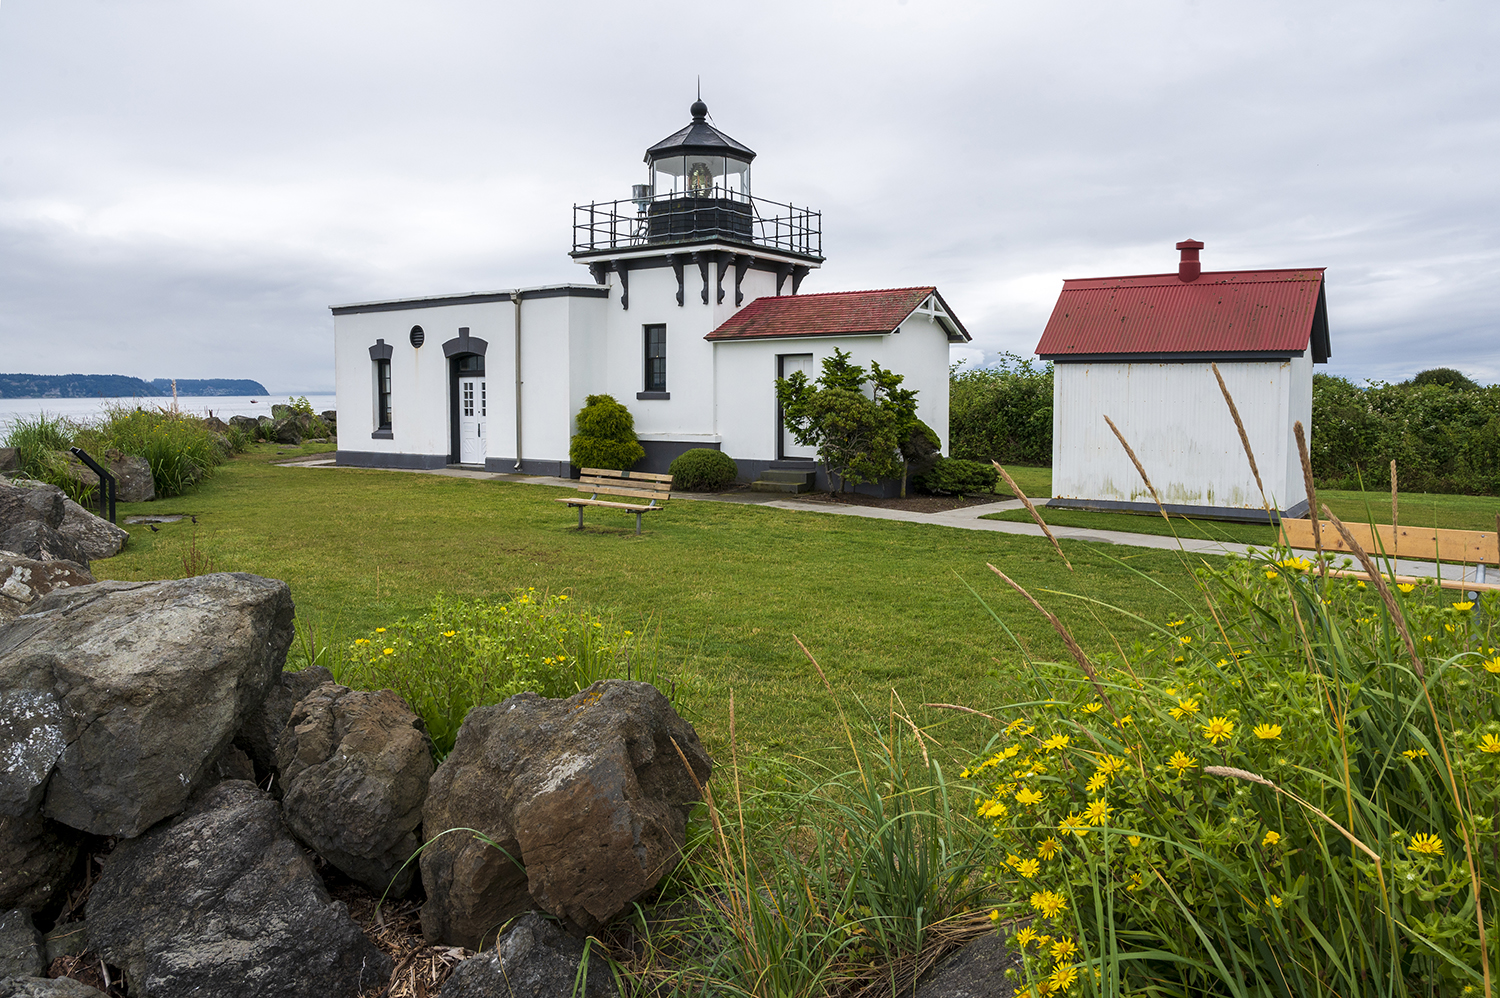 Point No Point Lighthouse is situated on the Kitsap Peninsula of the Puget Sound and still provides active navigational aid today. Opened in 1879, the first light signal was created using a kerosene lamp, and then upgraded to a Fresnel lens in 1880. (Image: Rachael Jones / Seattle Refined)